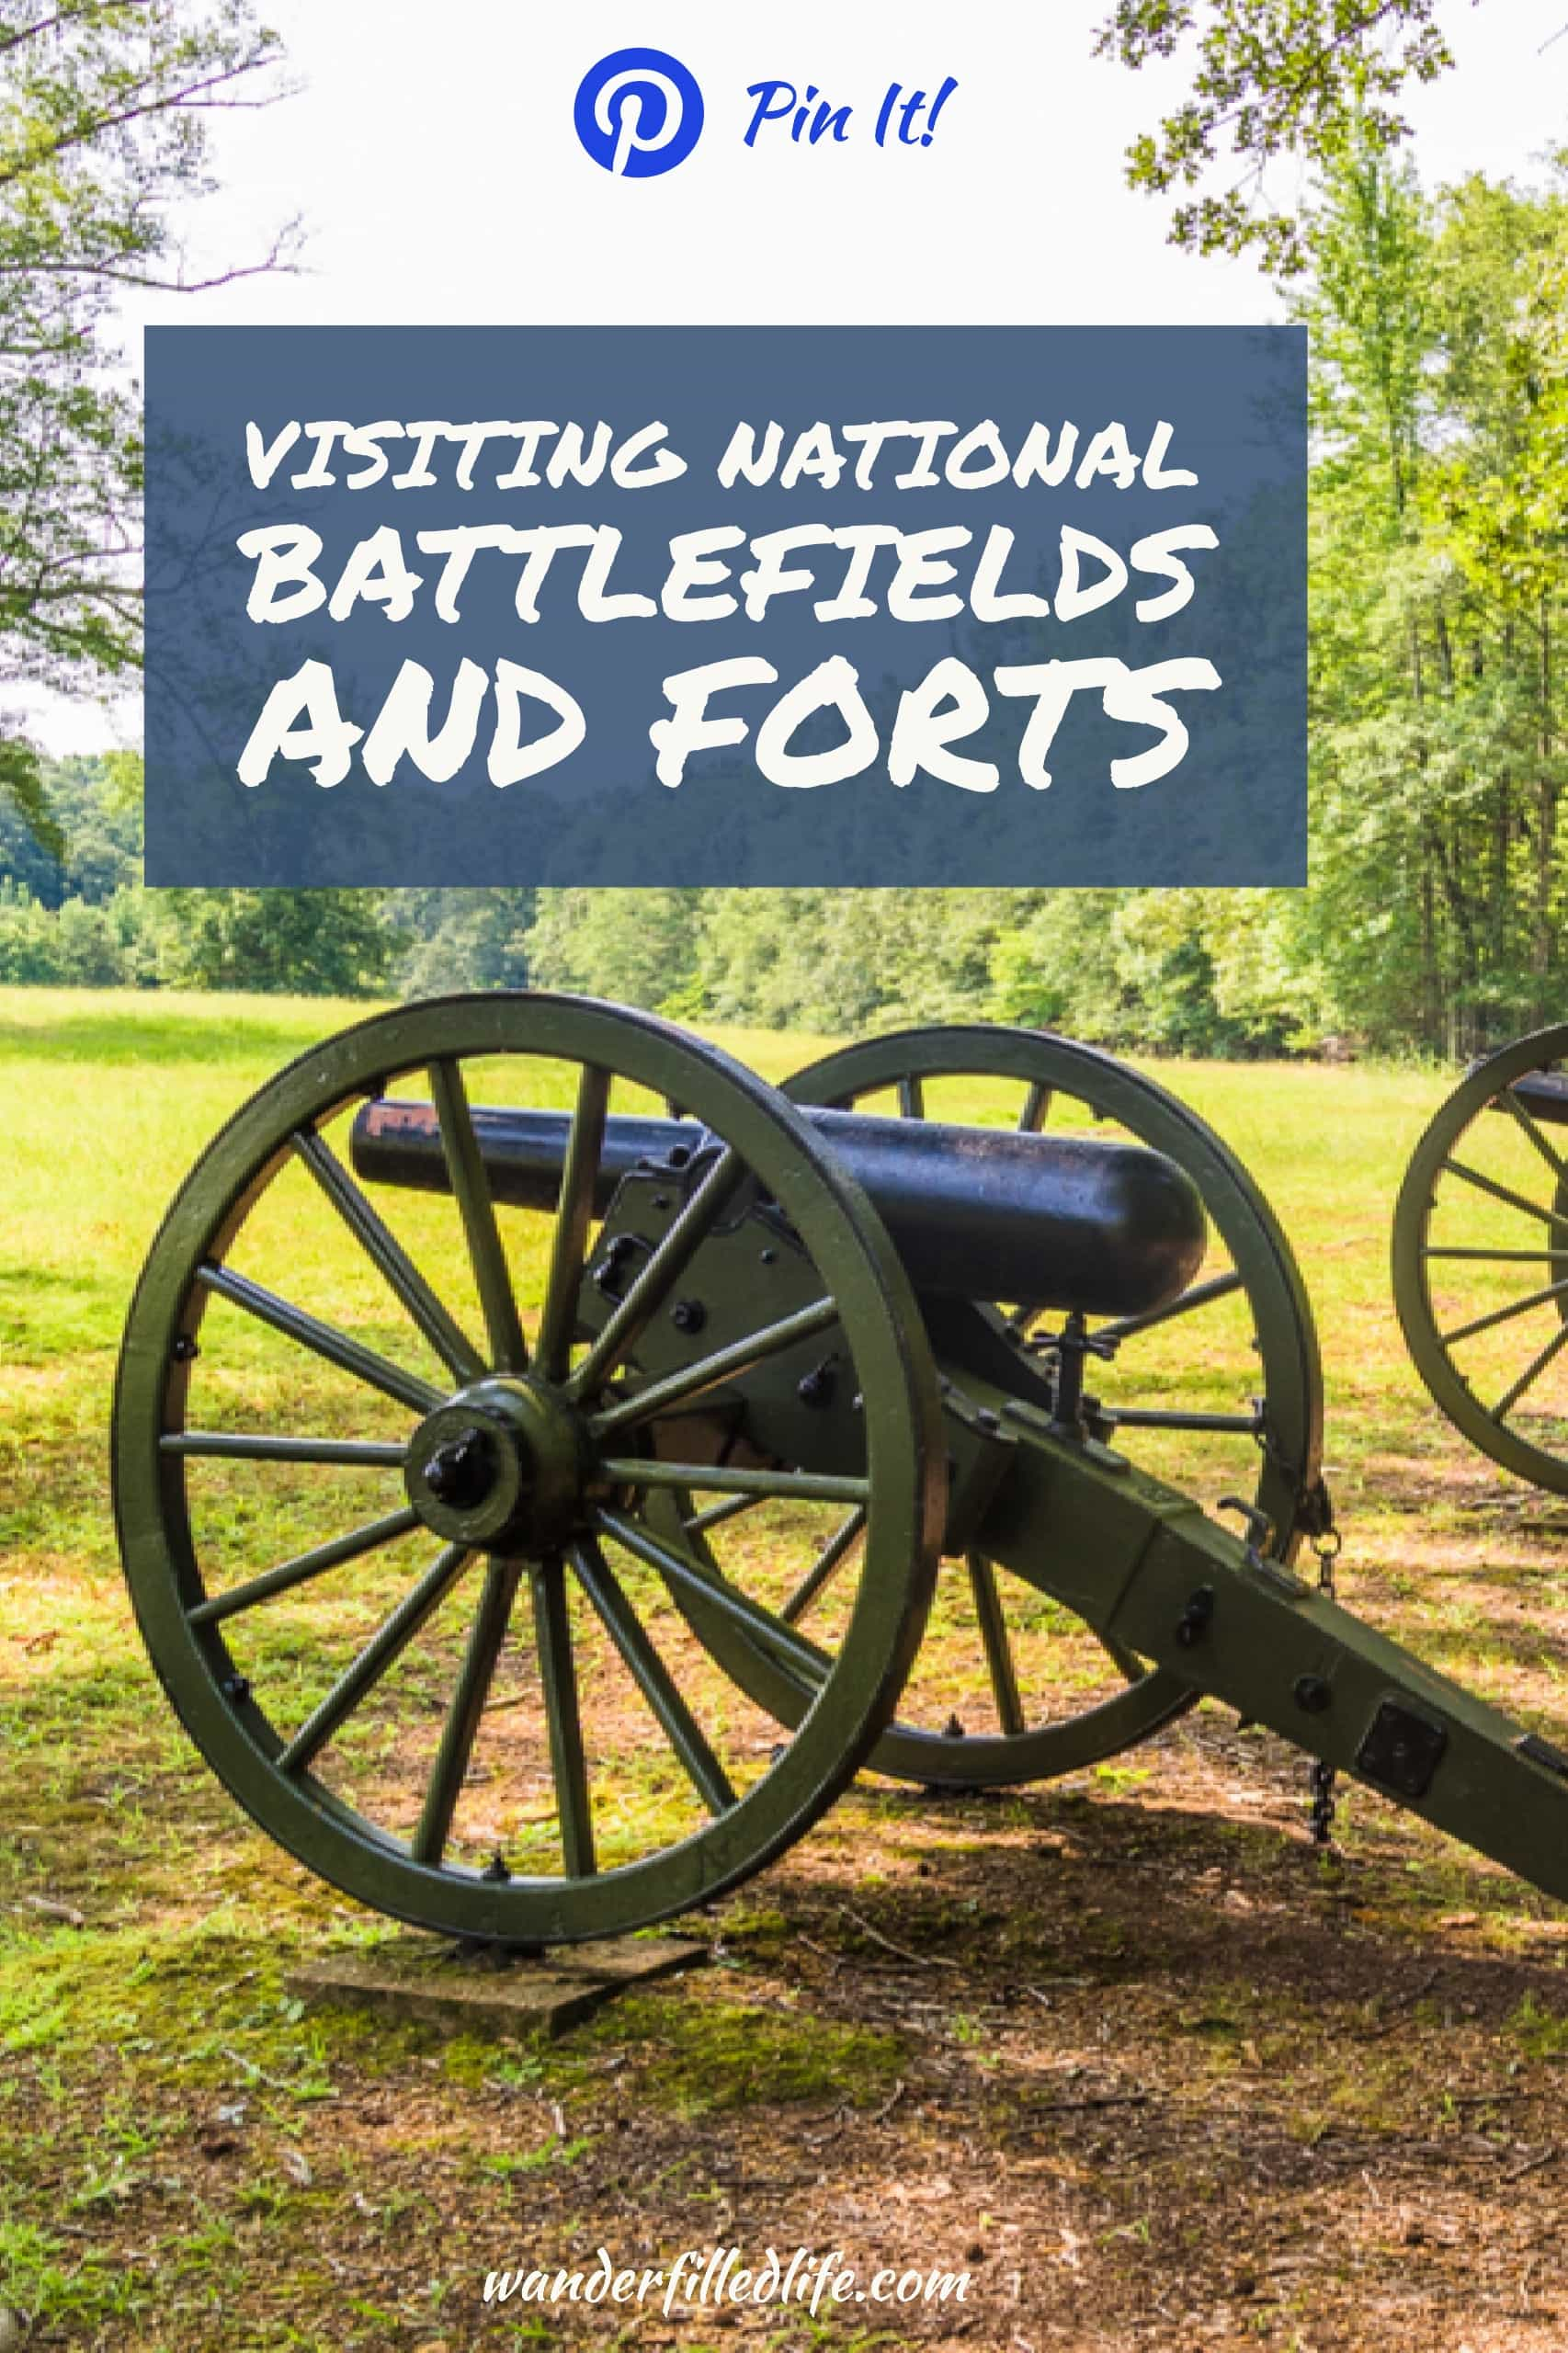 Our guide for visiting our national battlefields and forts: what to expect, how to make the most out of your visit and paying respect to all who fought.